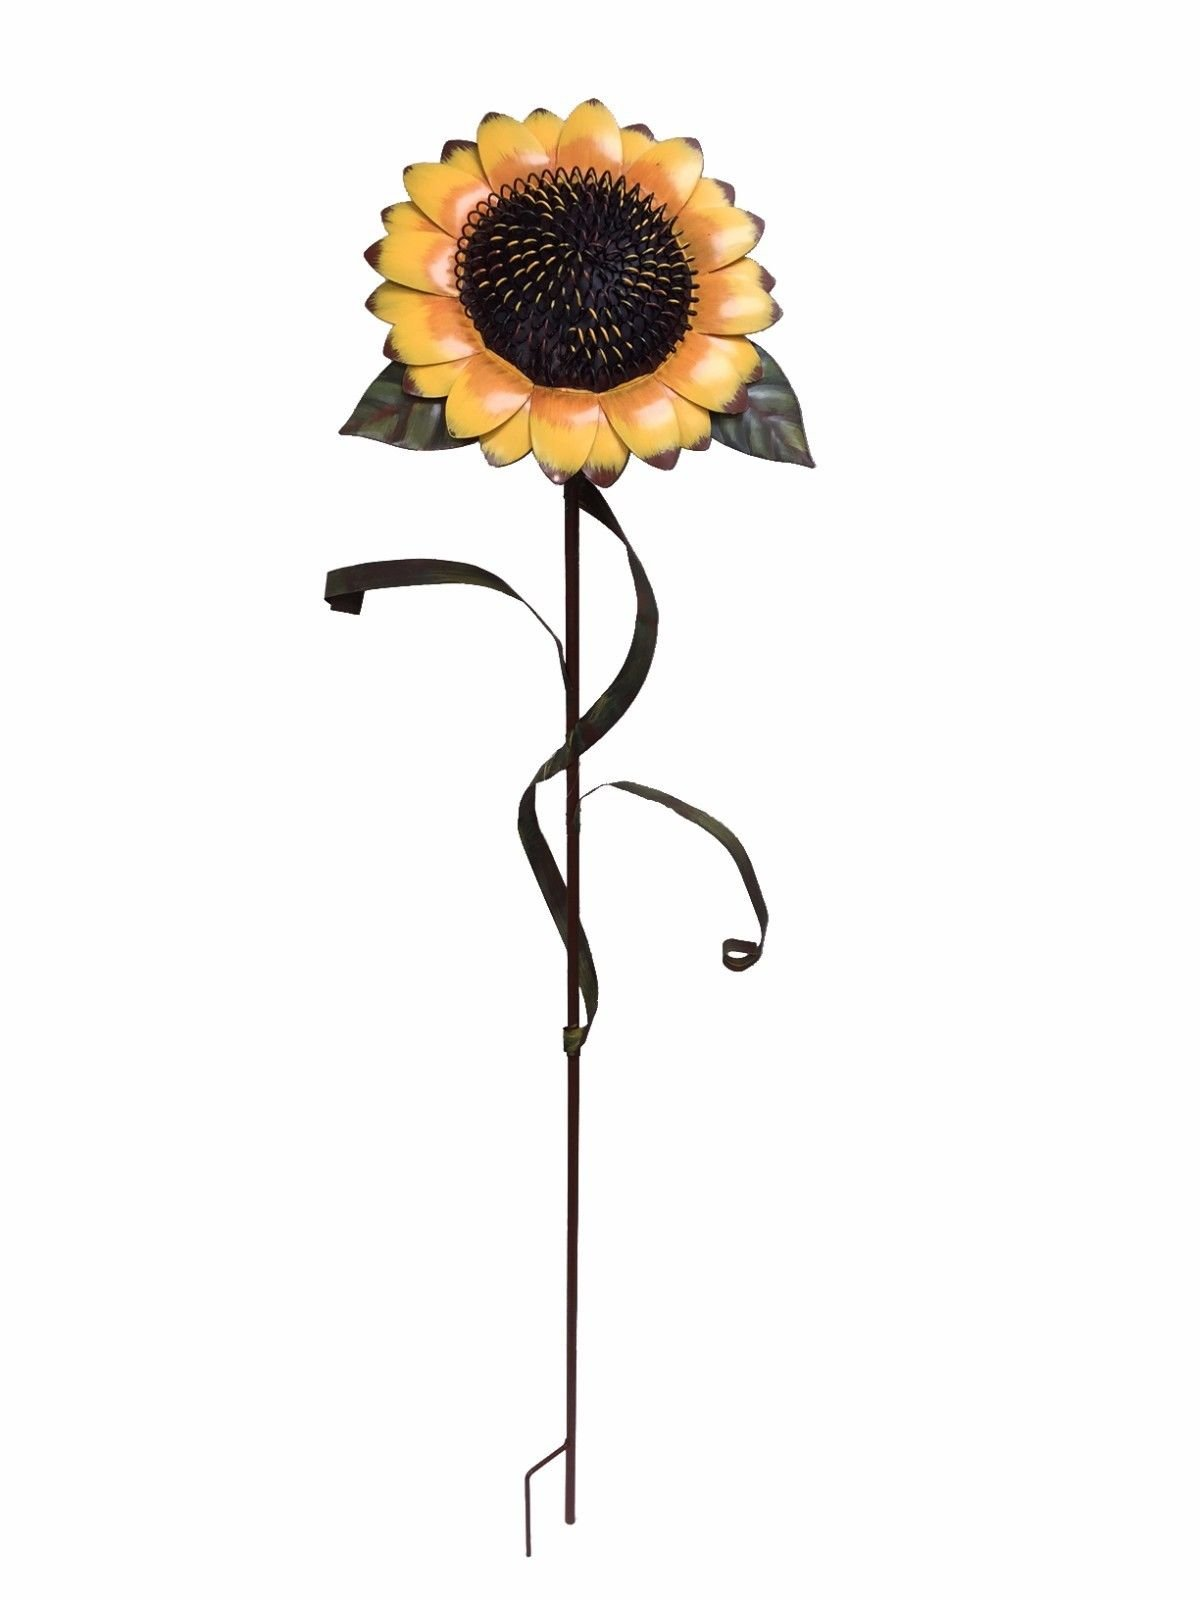 Large Garden Sunflower Stake Metal Yard Decor Lawn Decoration Outdoor 48''Tall